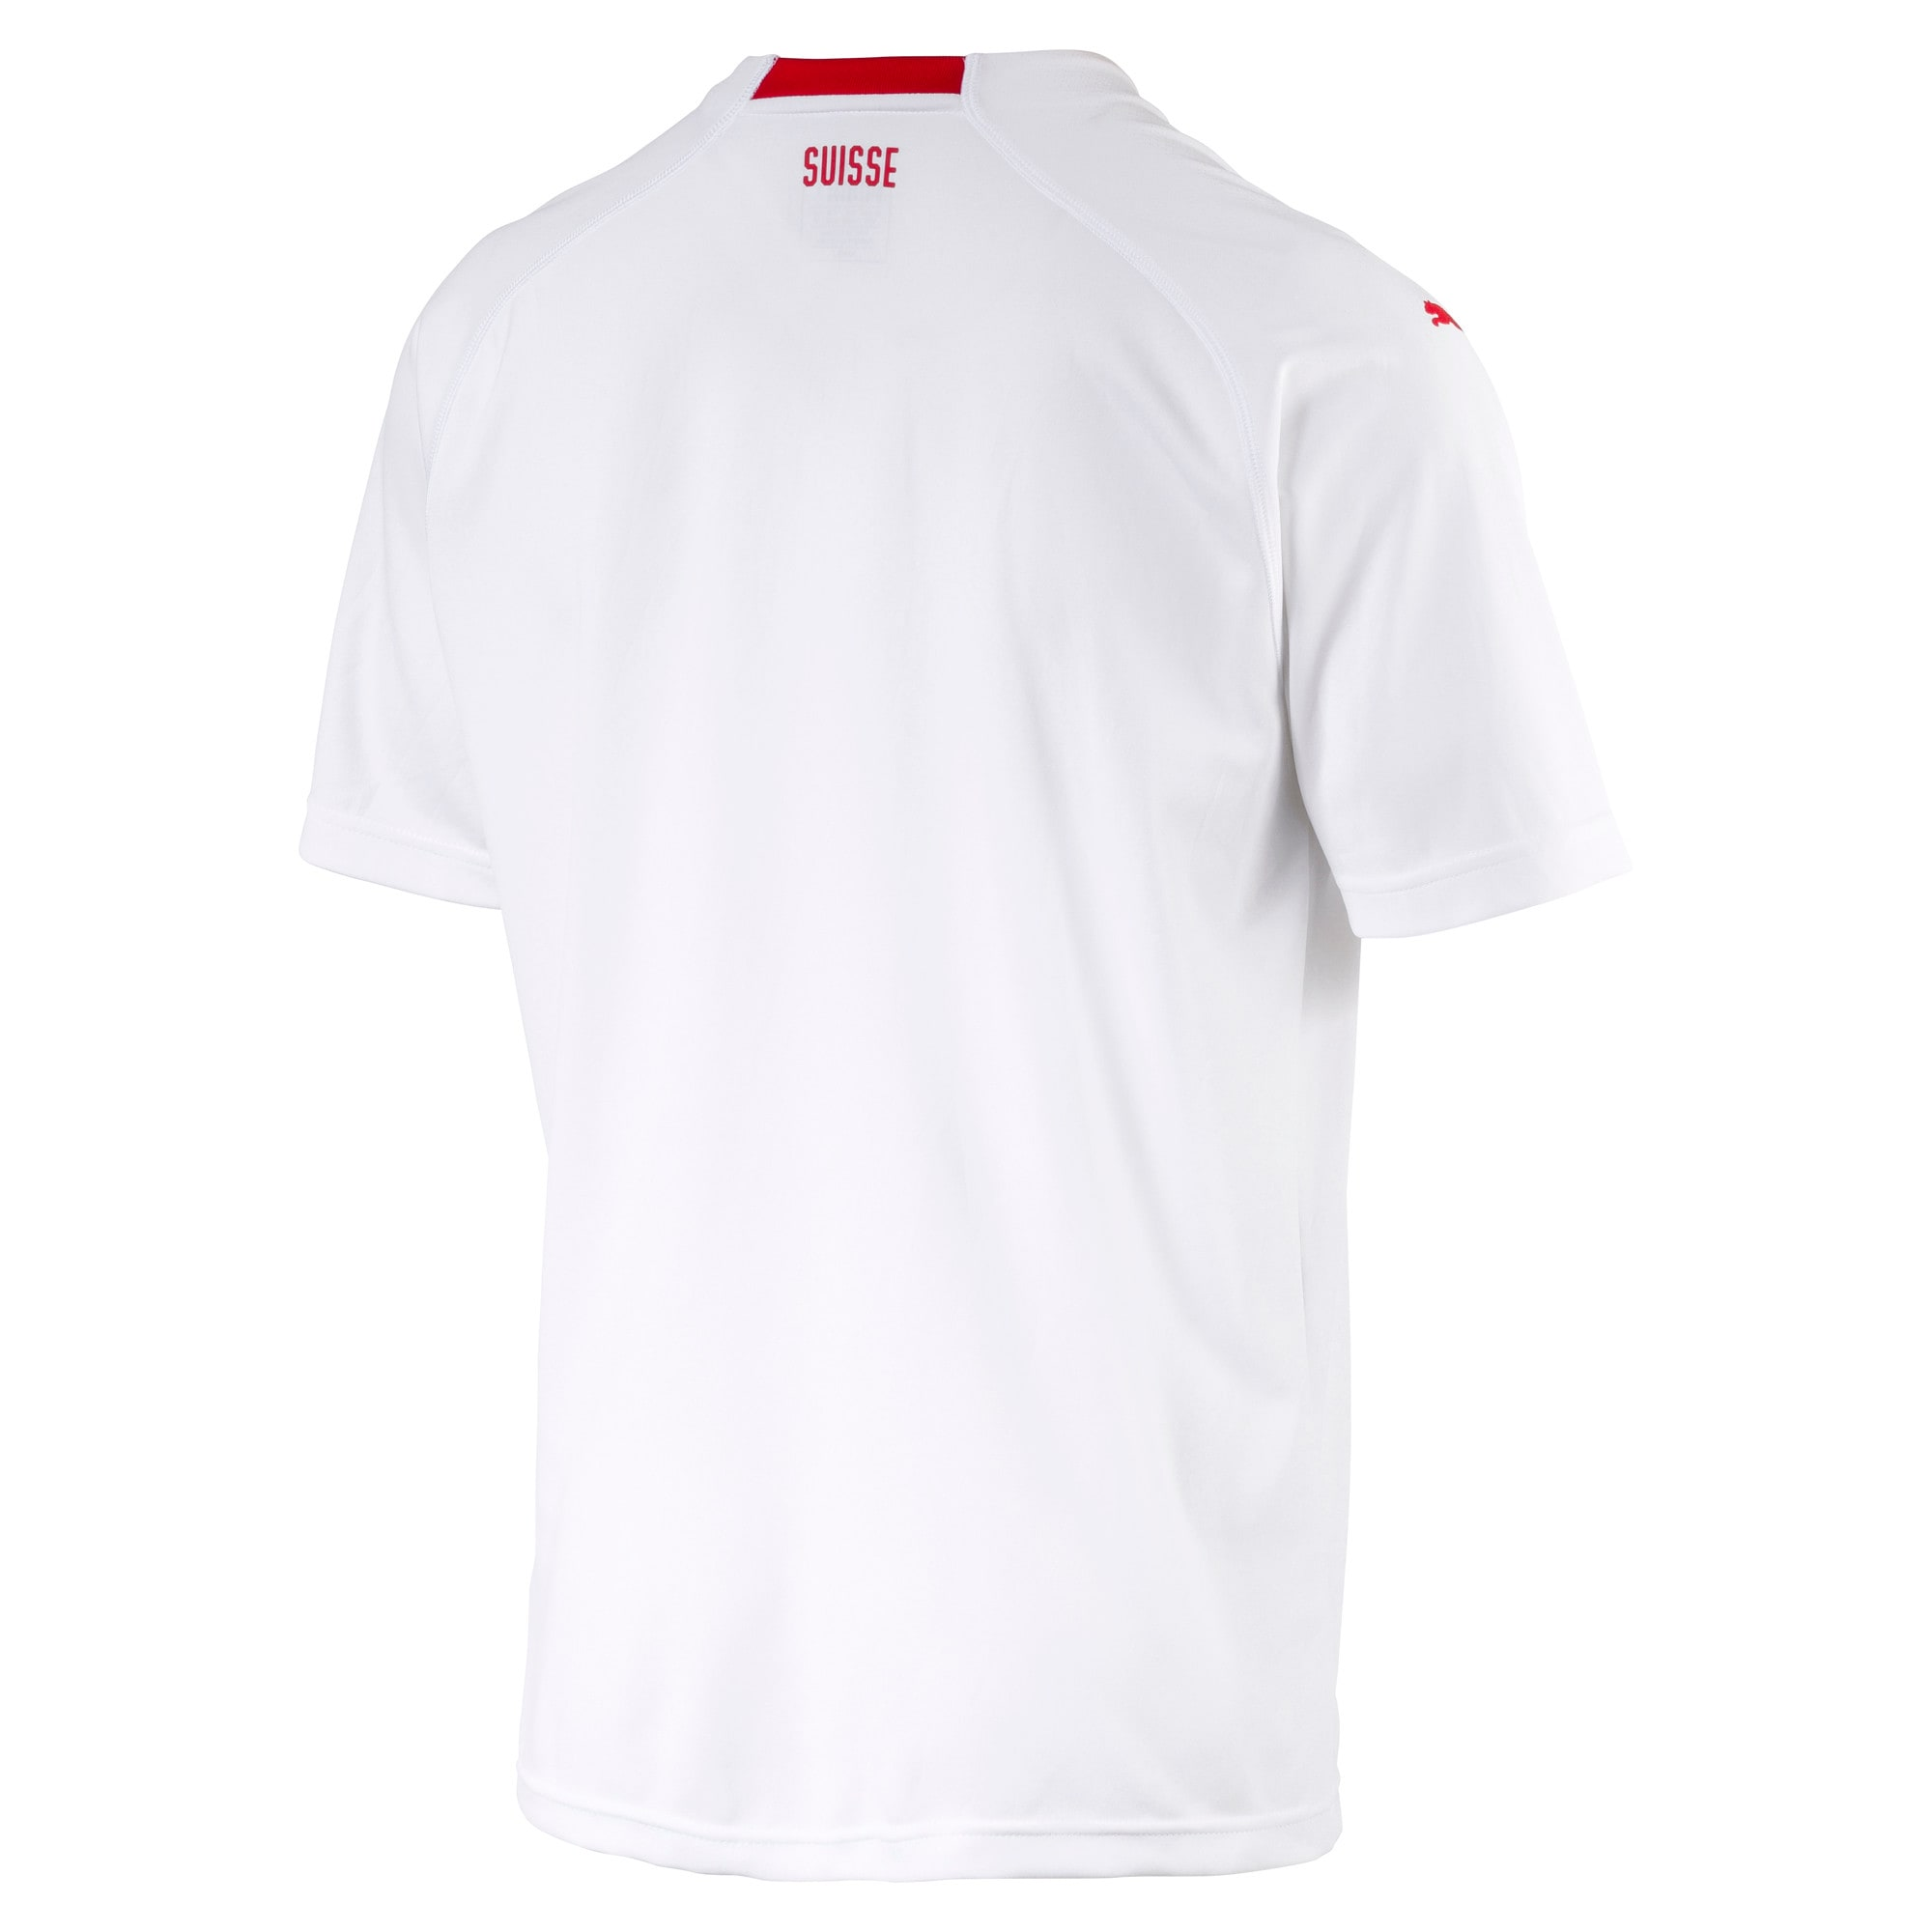 Thumbnail 3 of Switzerland Men's Away Replica Jersey, Puma White-Puma Red, medium